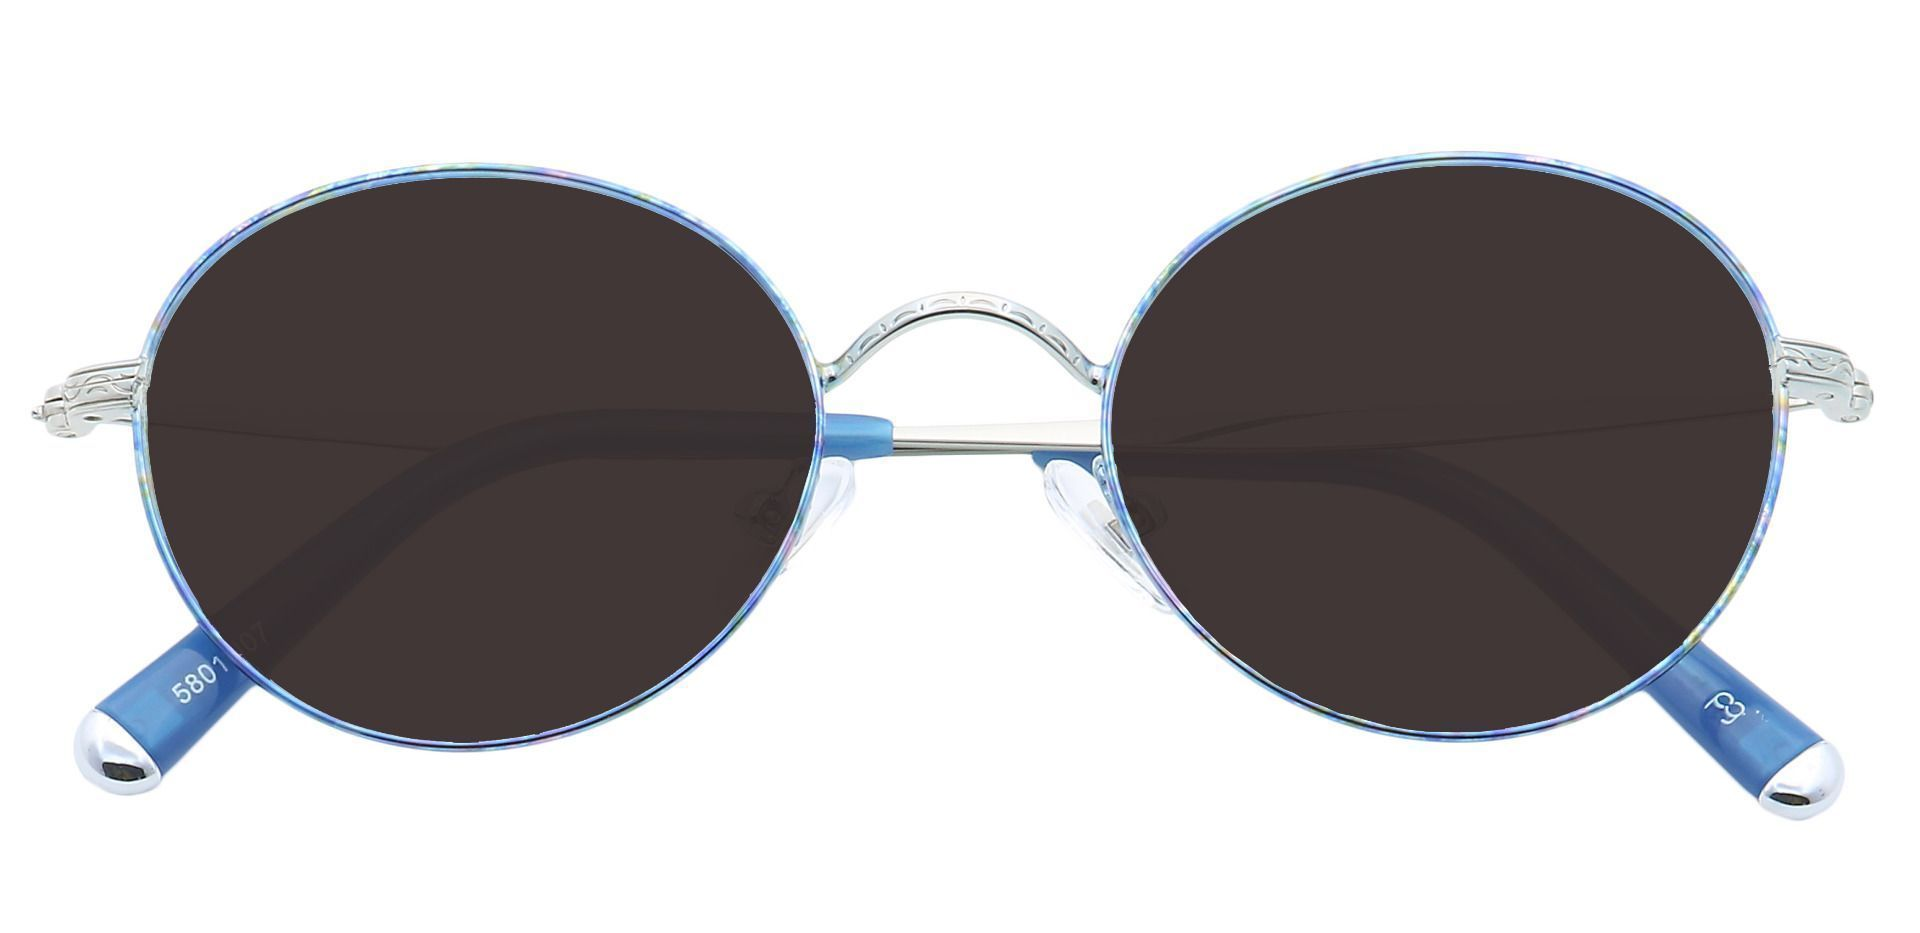 Skylar Round Prescription Sunglasses - Blue Frame With Gray Lenses